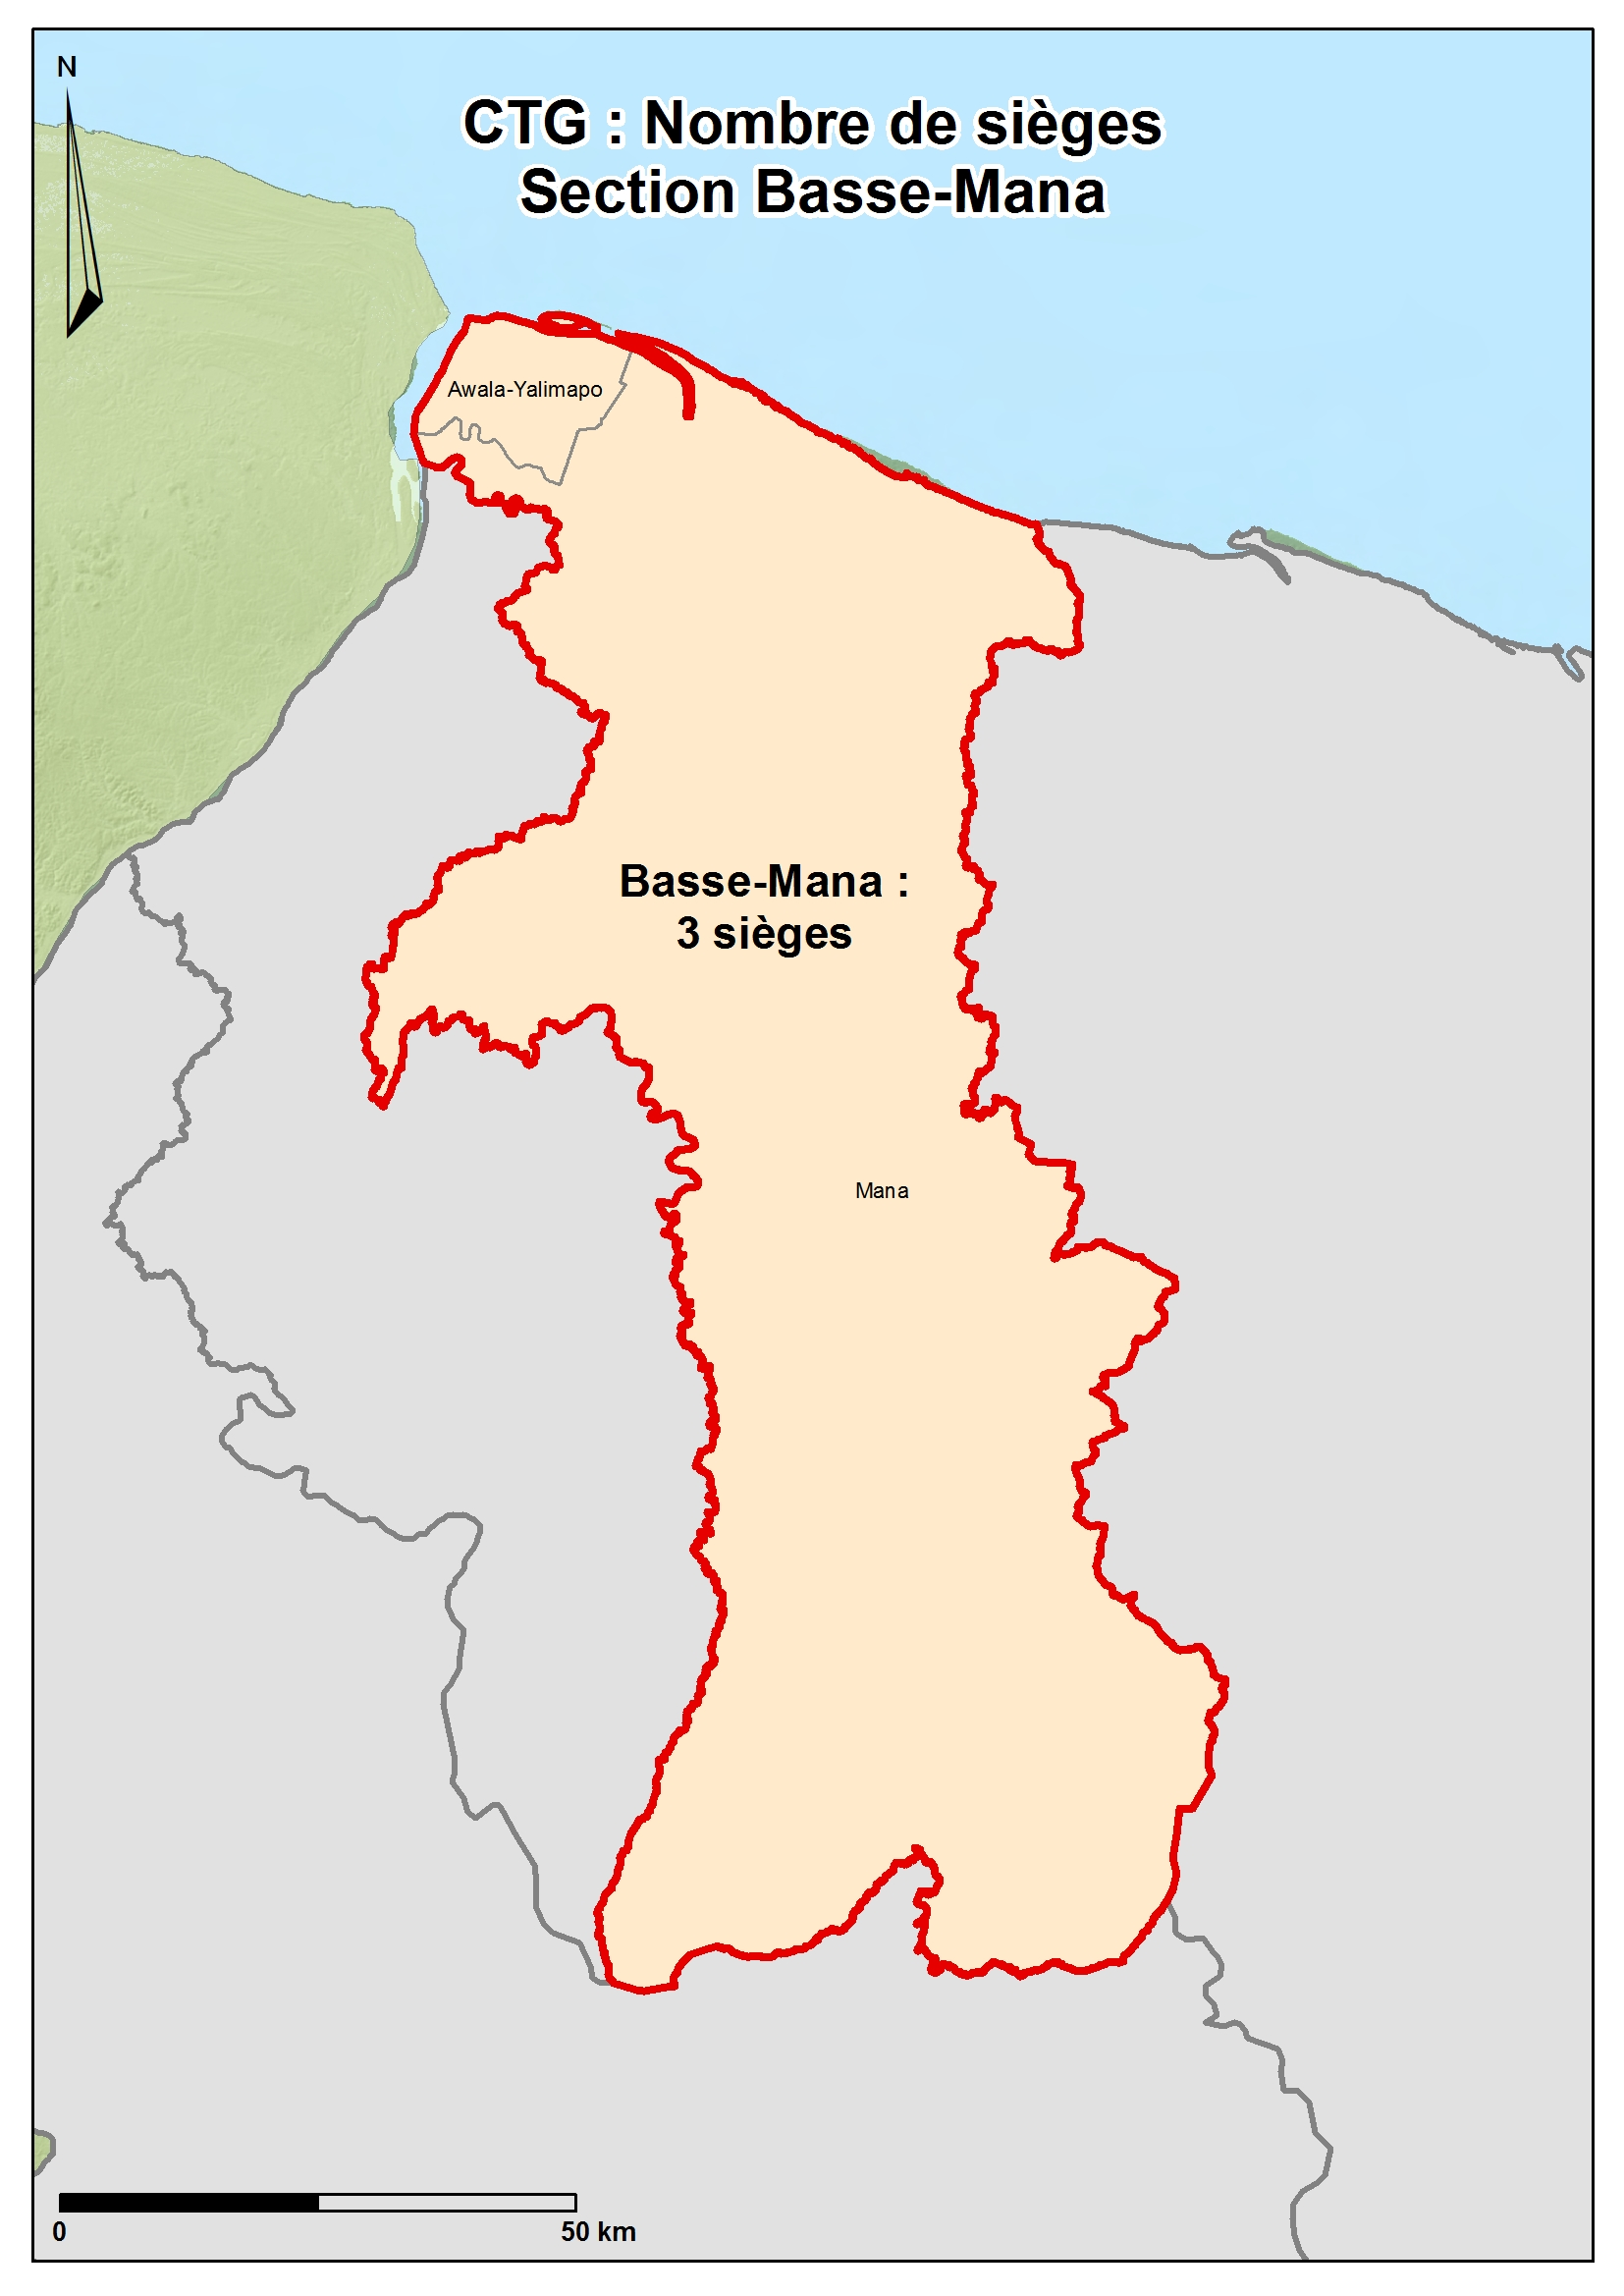 section_basse-mana_sanslogo.jpg